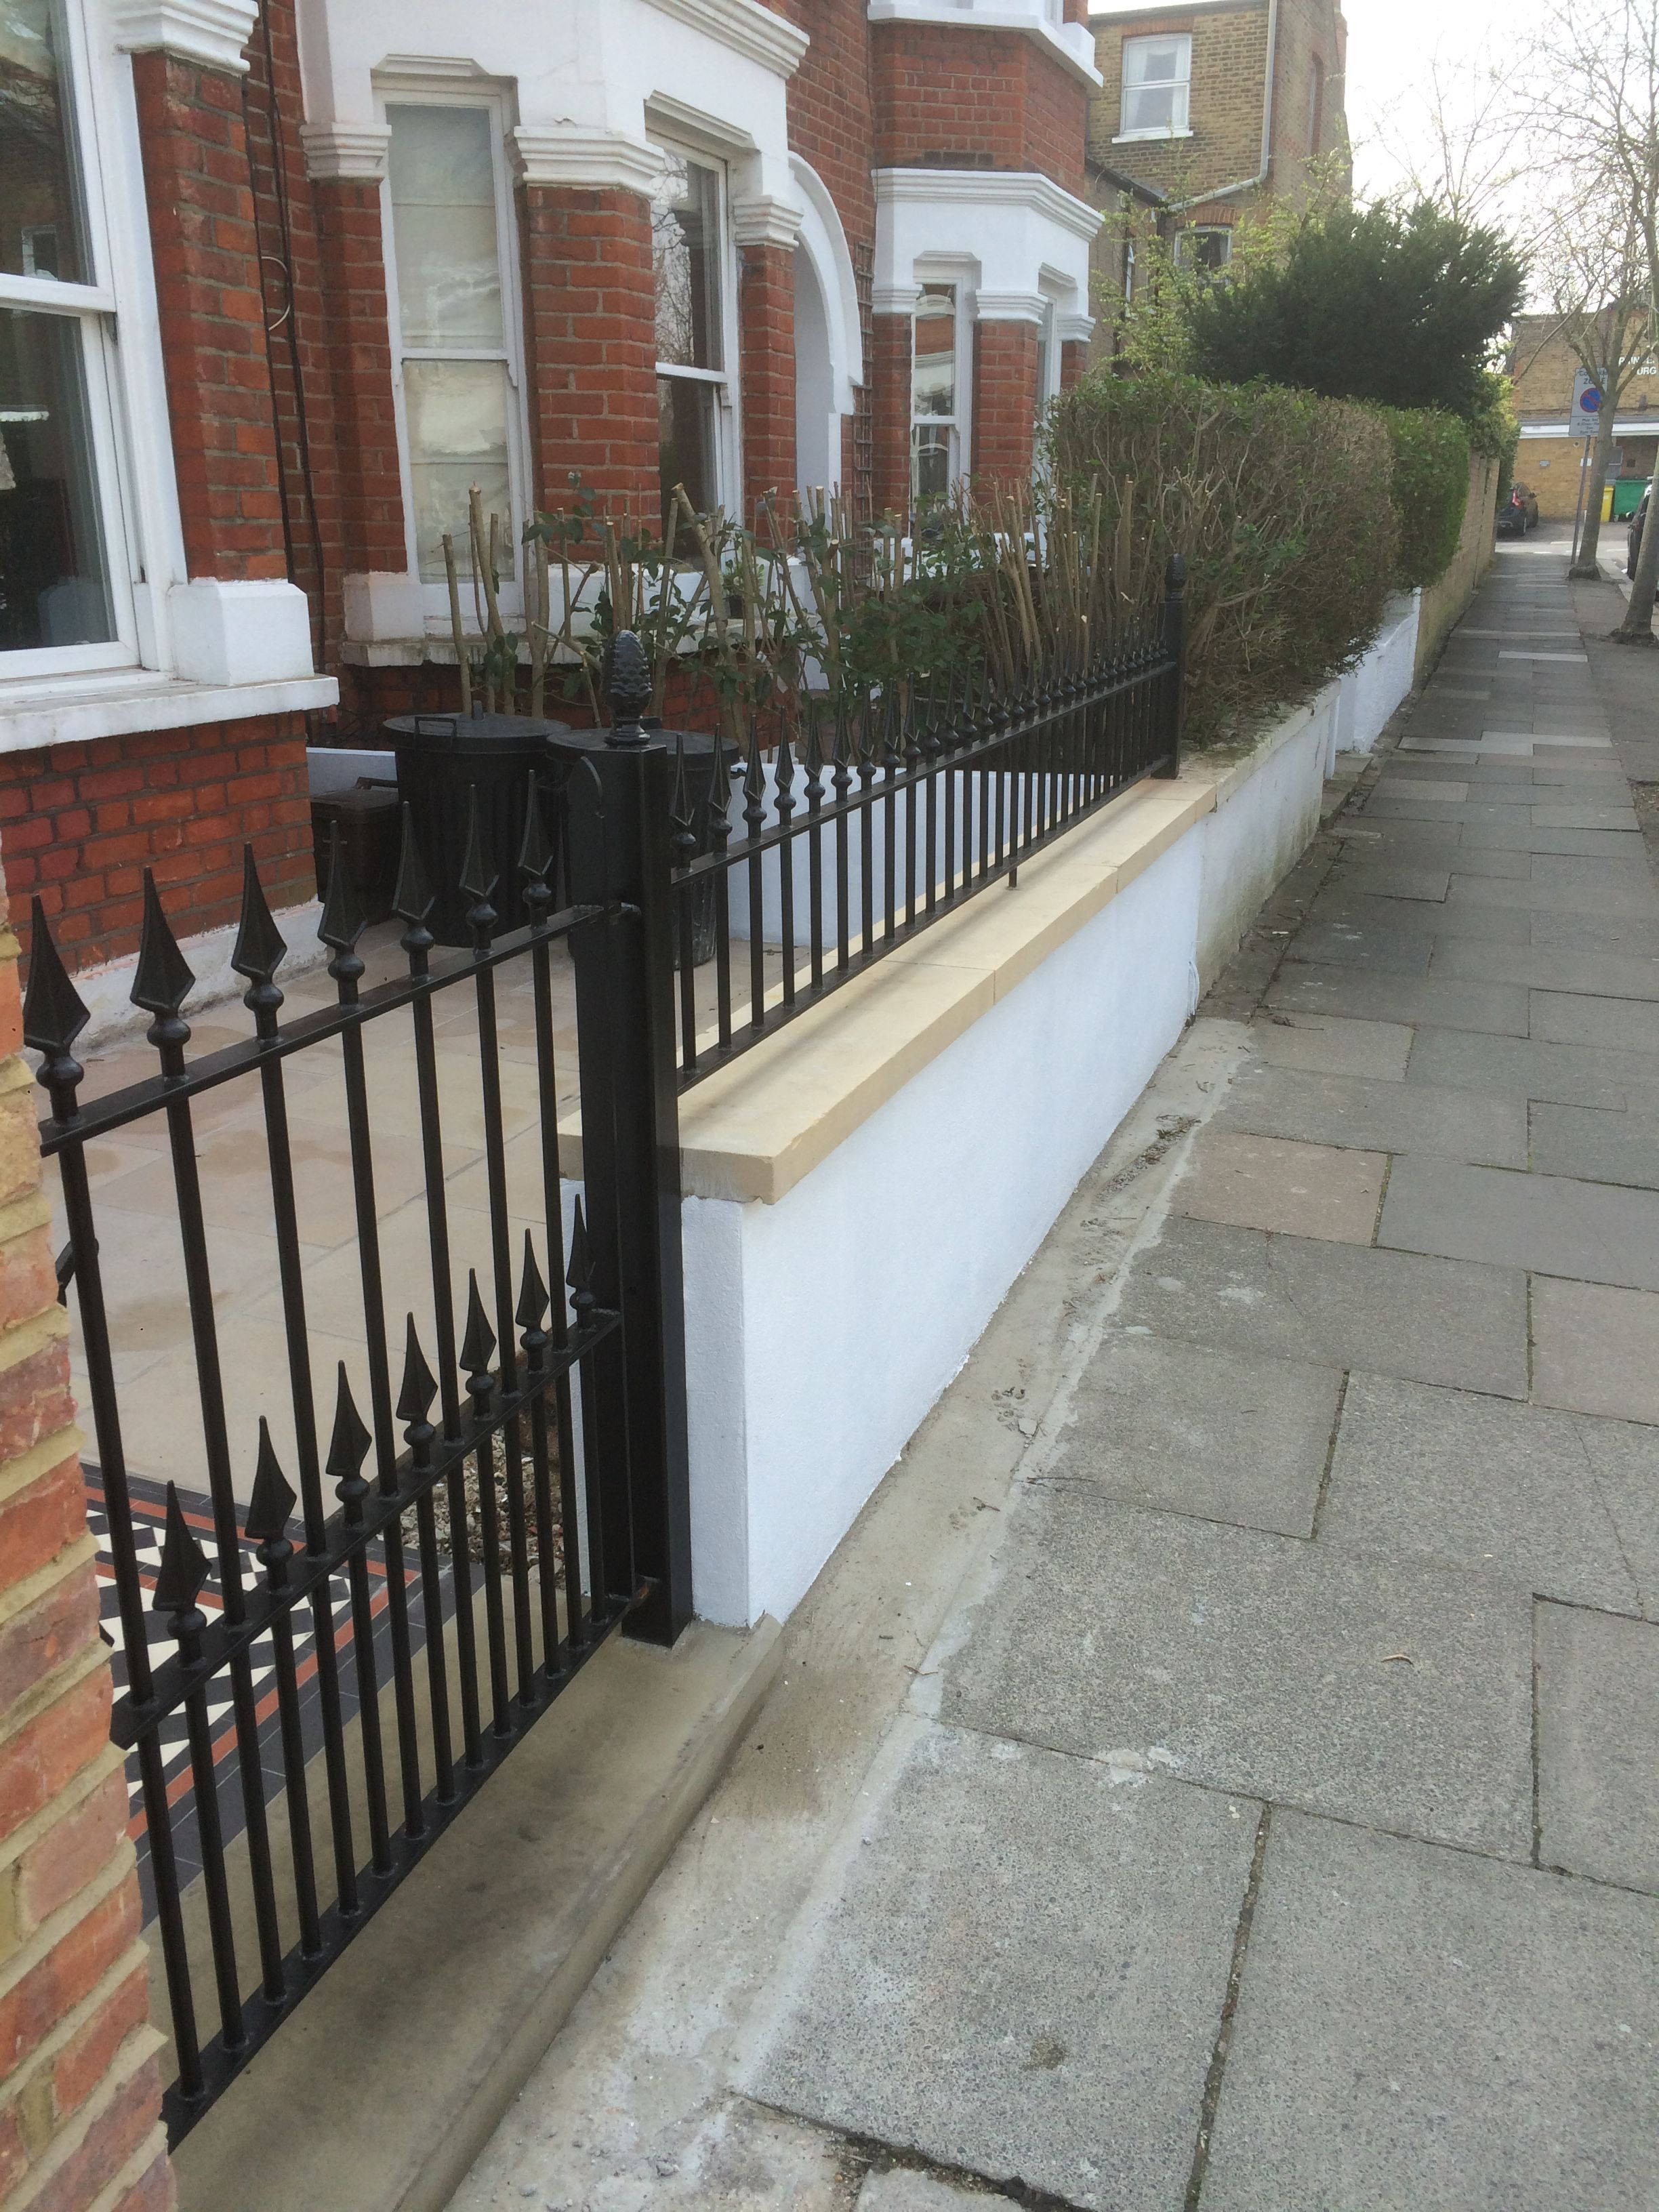 Black cast iron gate and railings in London front garden